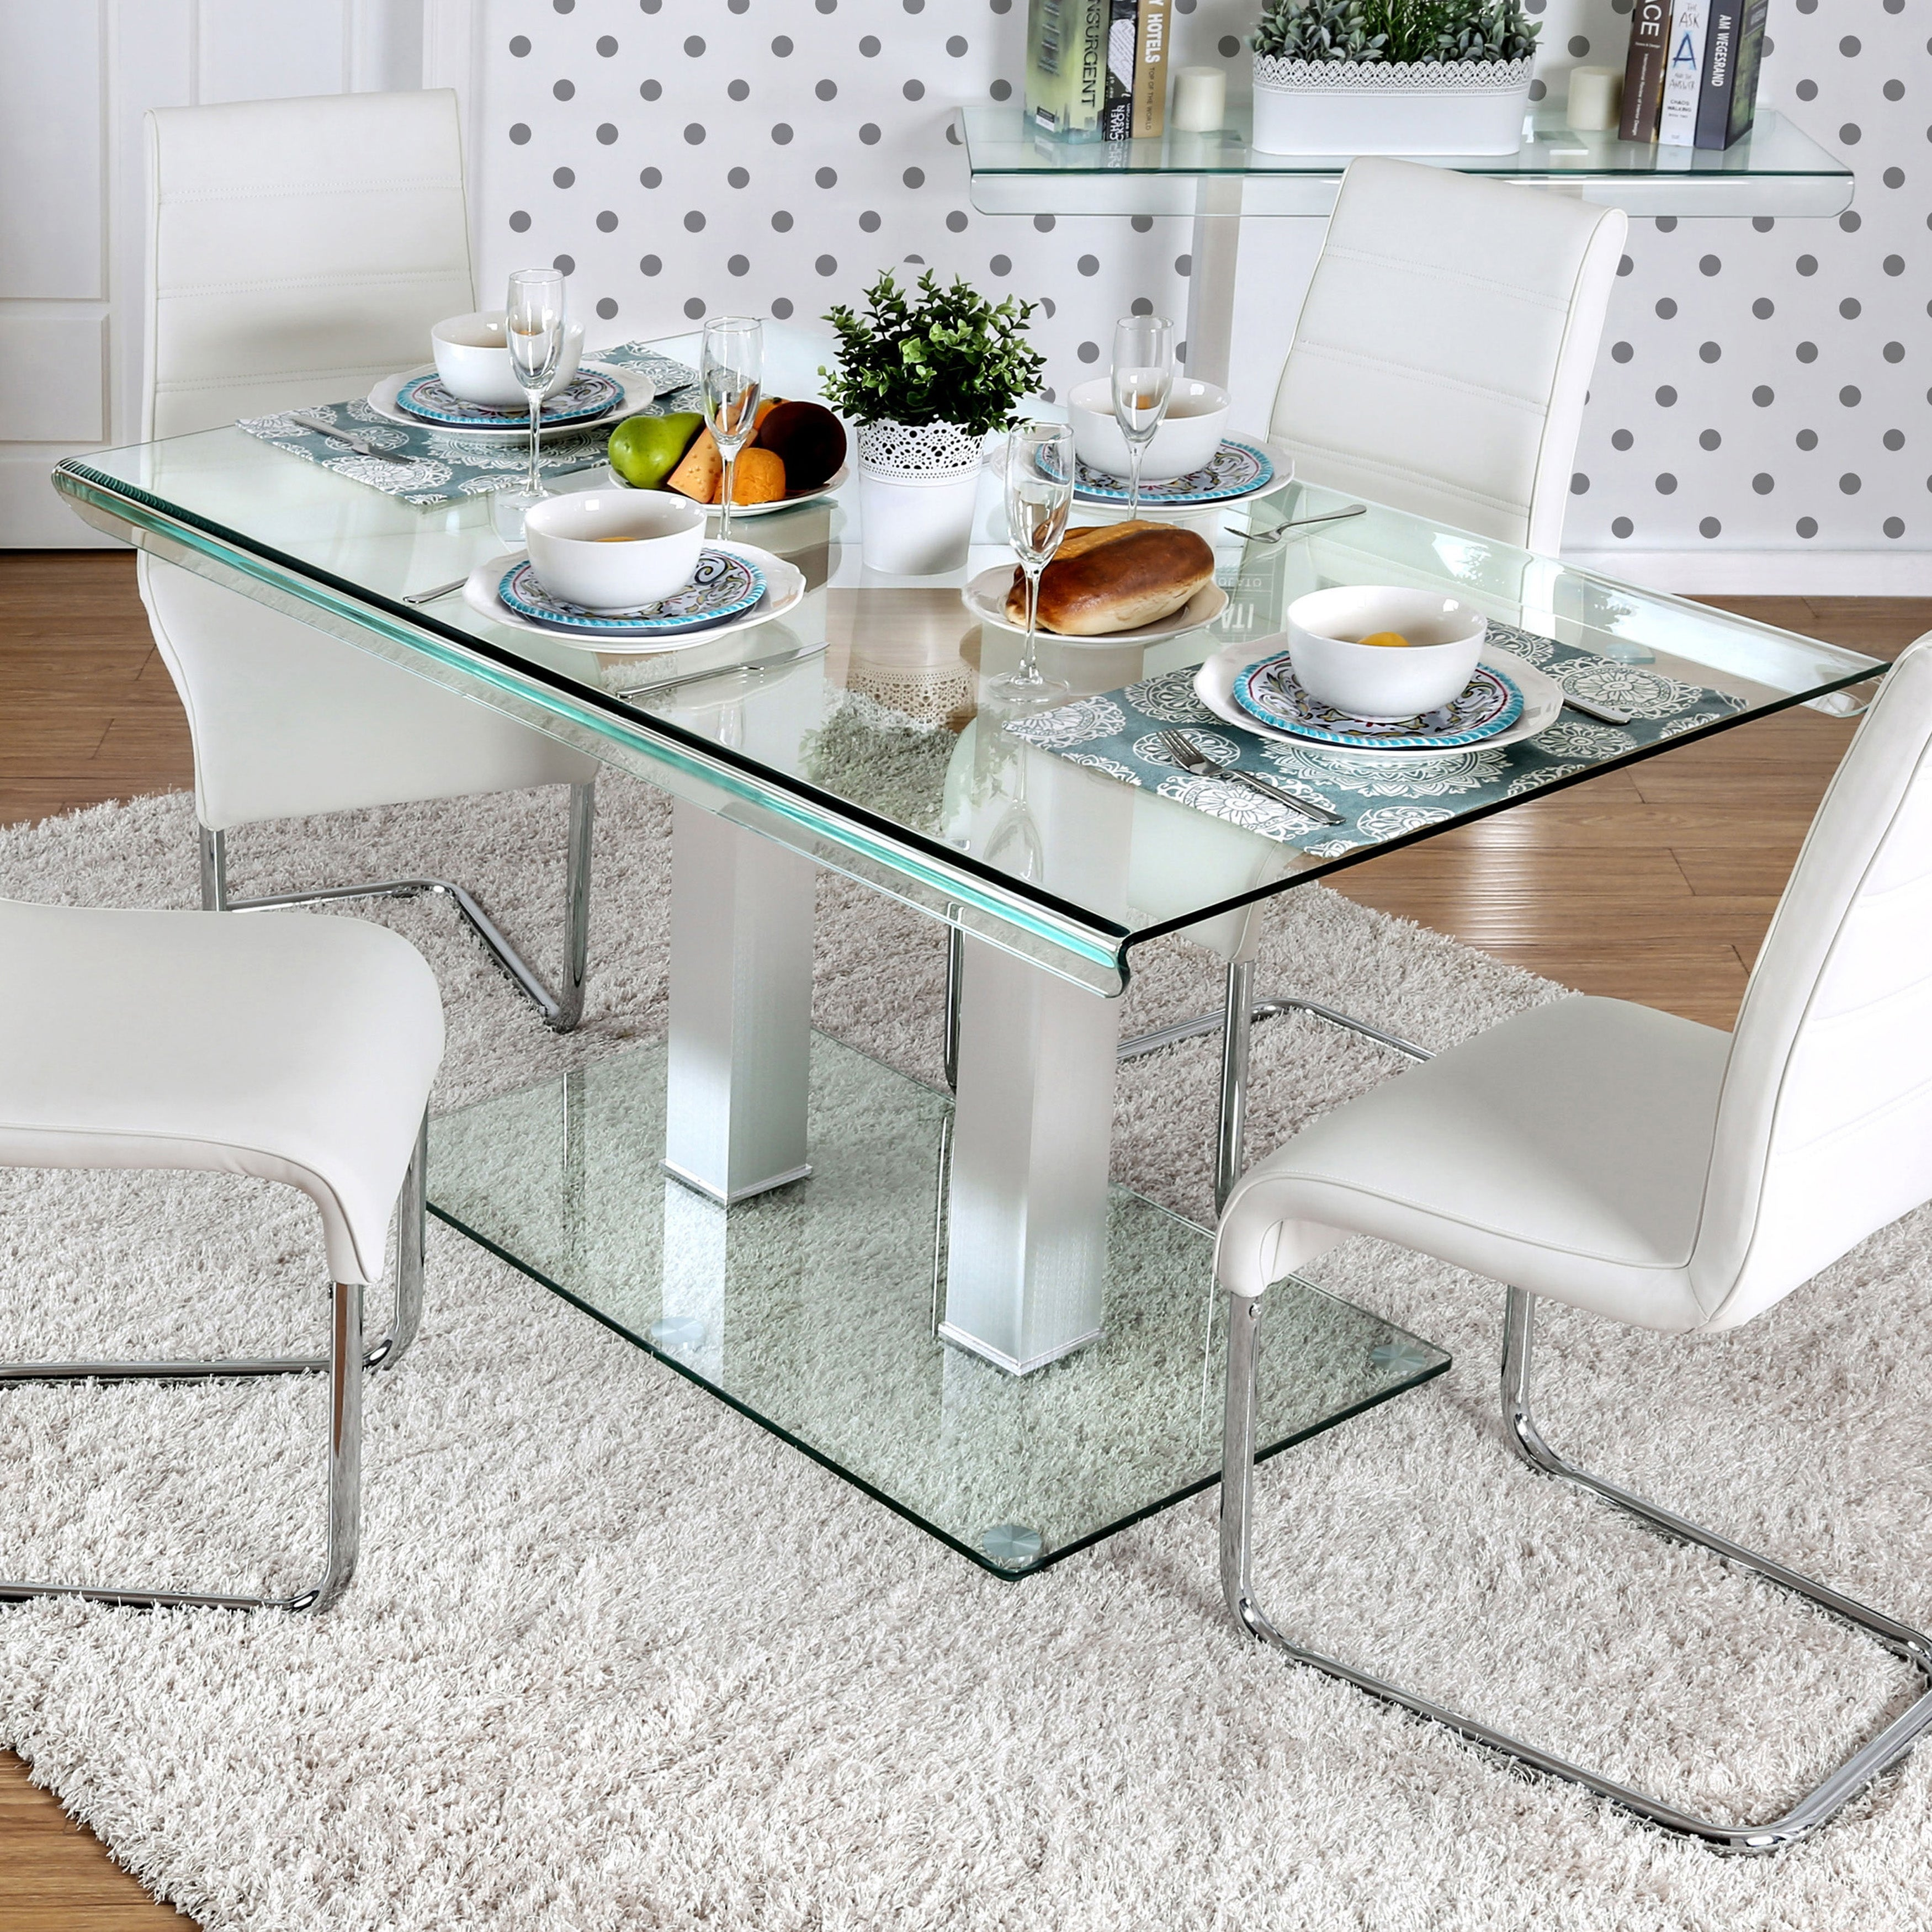 Furniture Of America Maza 59 In Silvertone Metal Glass Dining Table Overstock 12521474